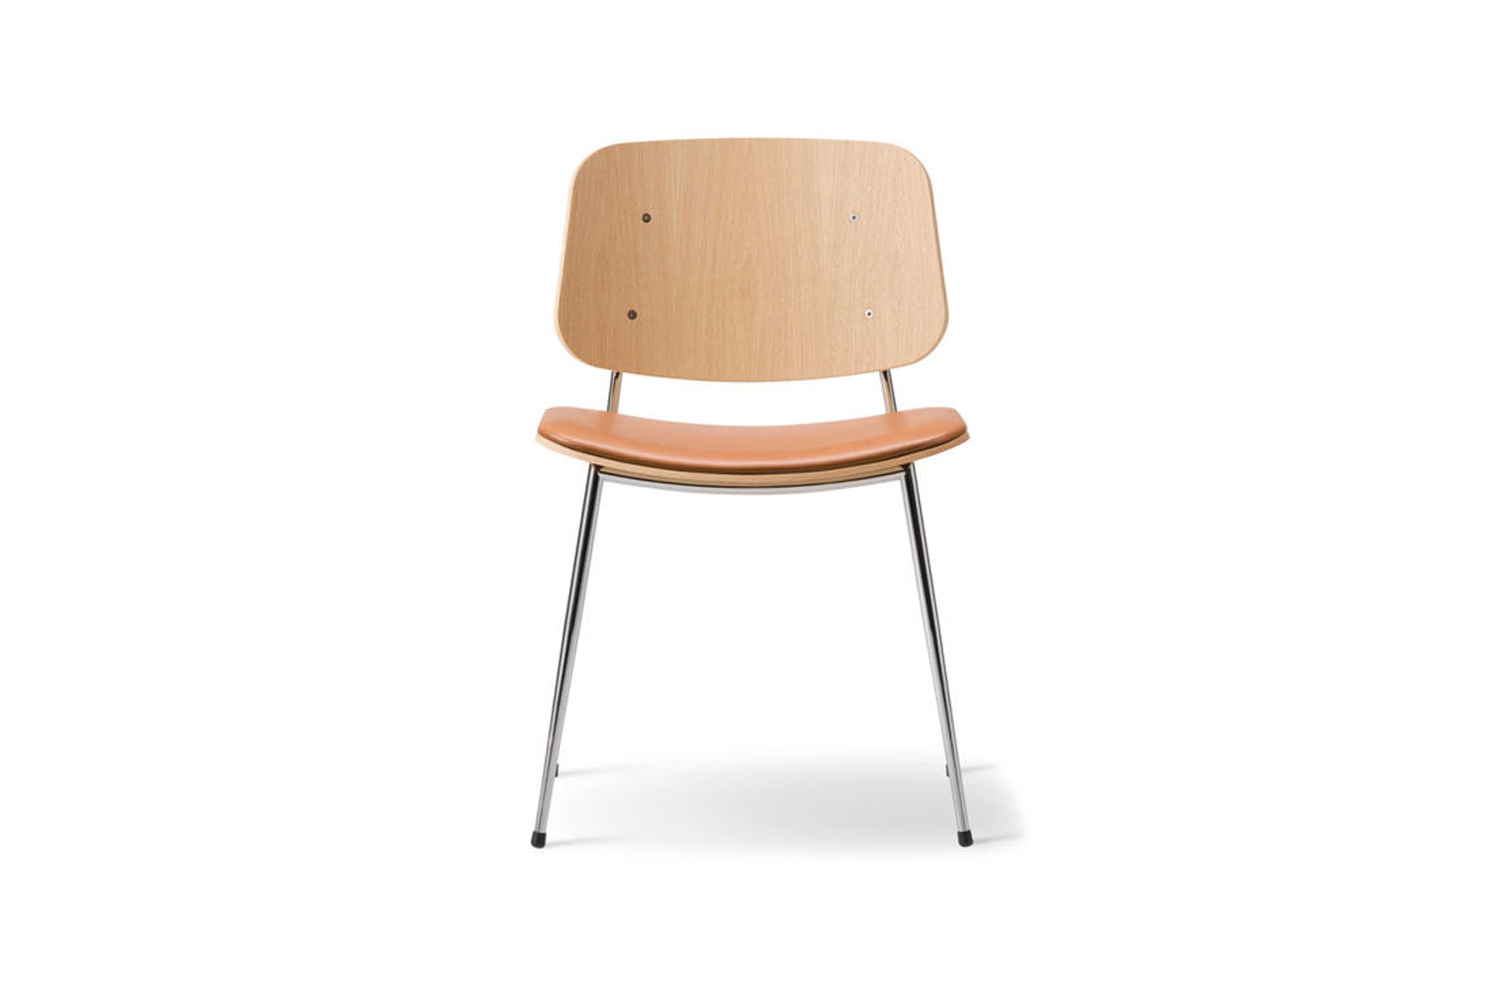 The Soborg Upholstered Seat Chair Metal Base is similar to the simple dining chairs in the Denmark kitchen. The Soborg is $865 at Hive.